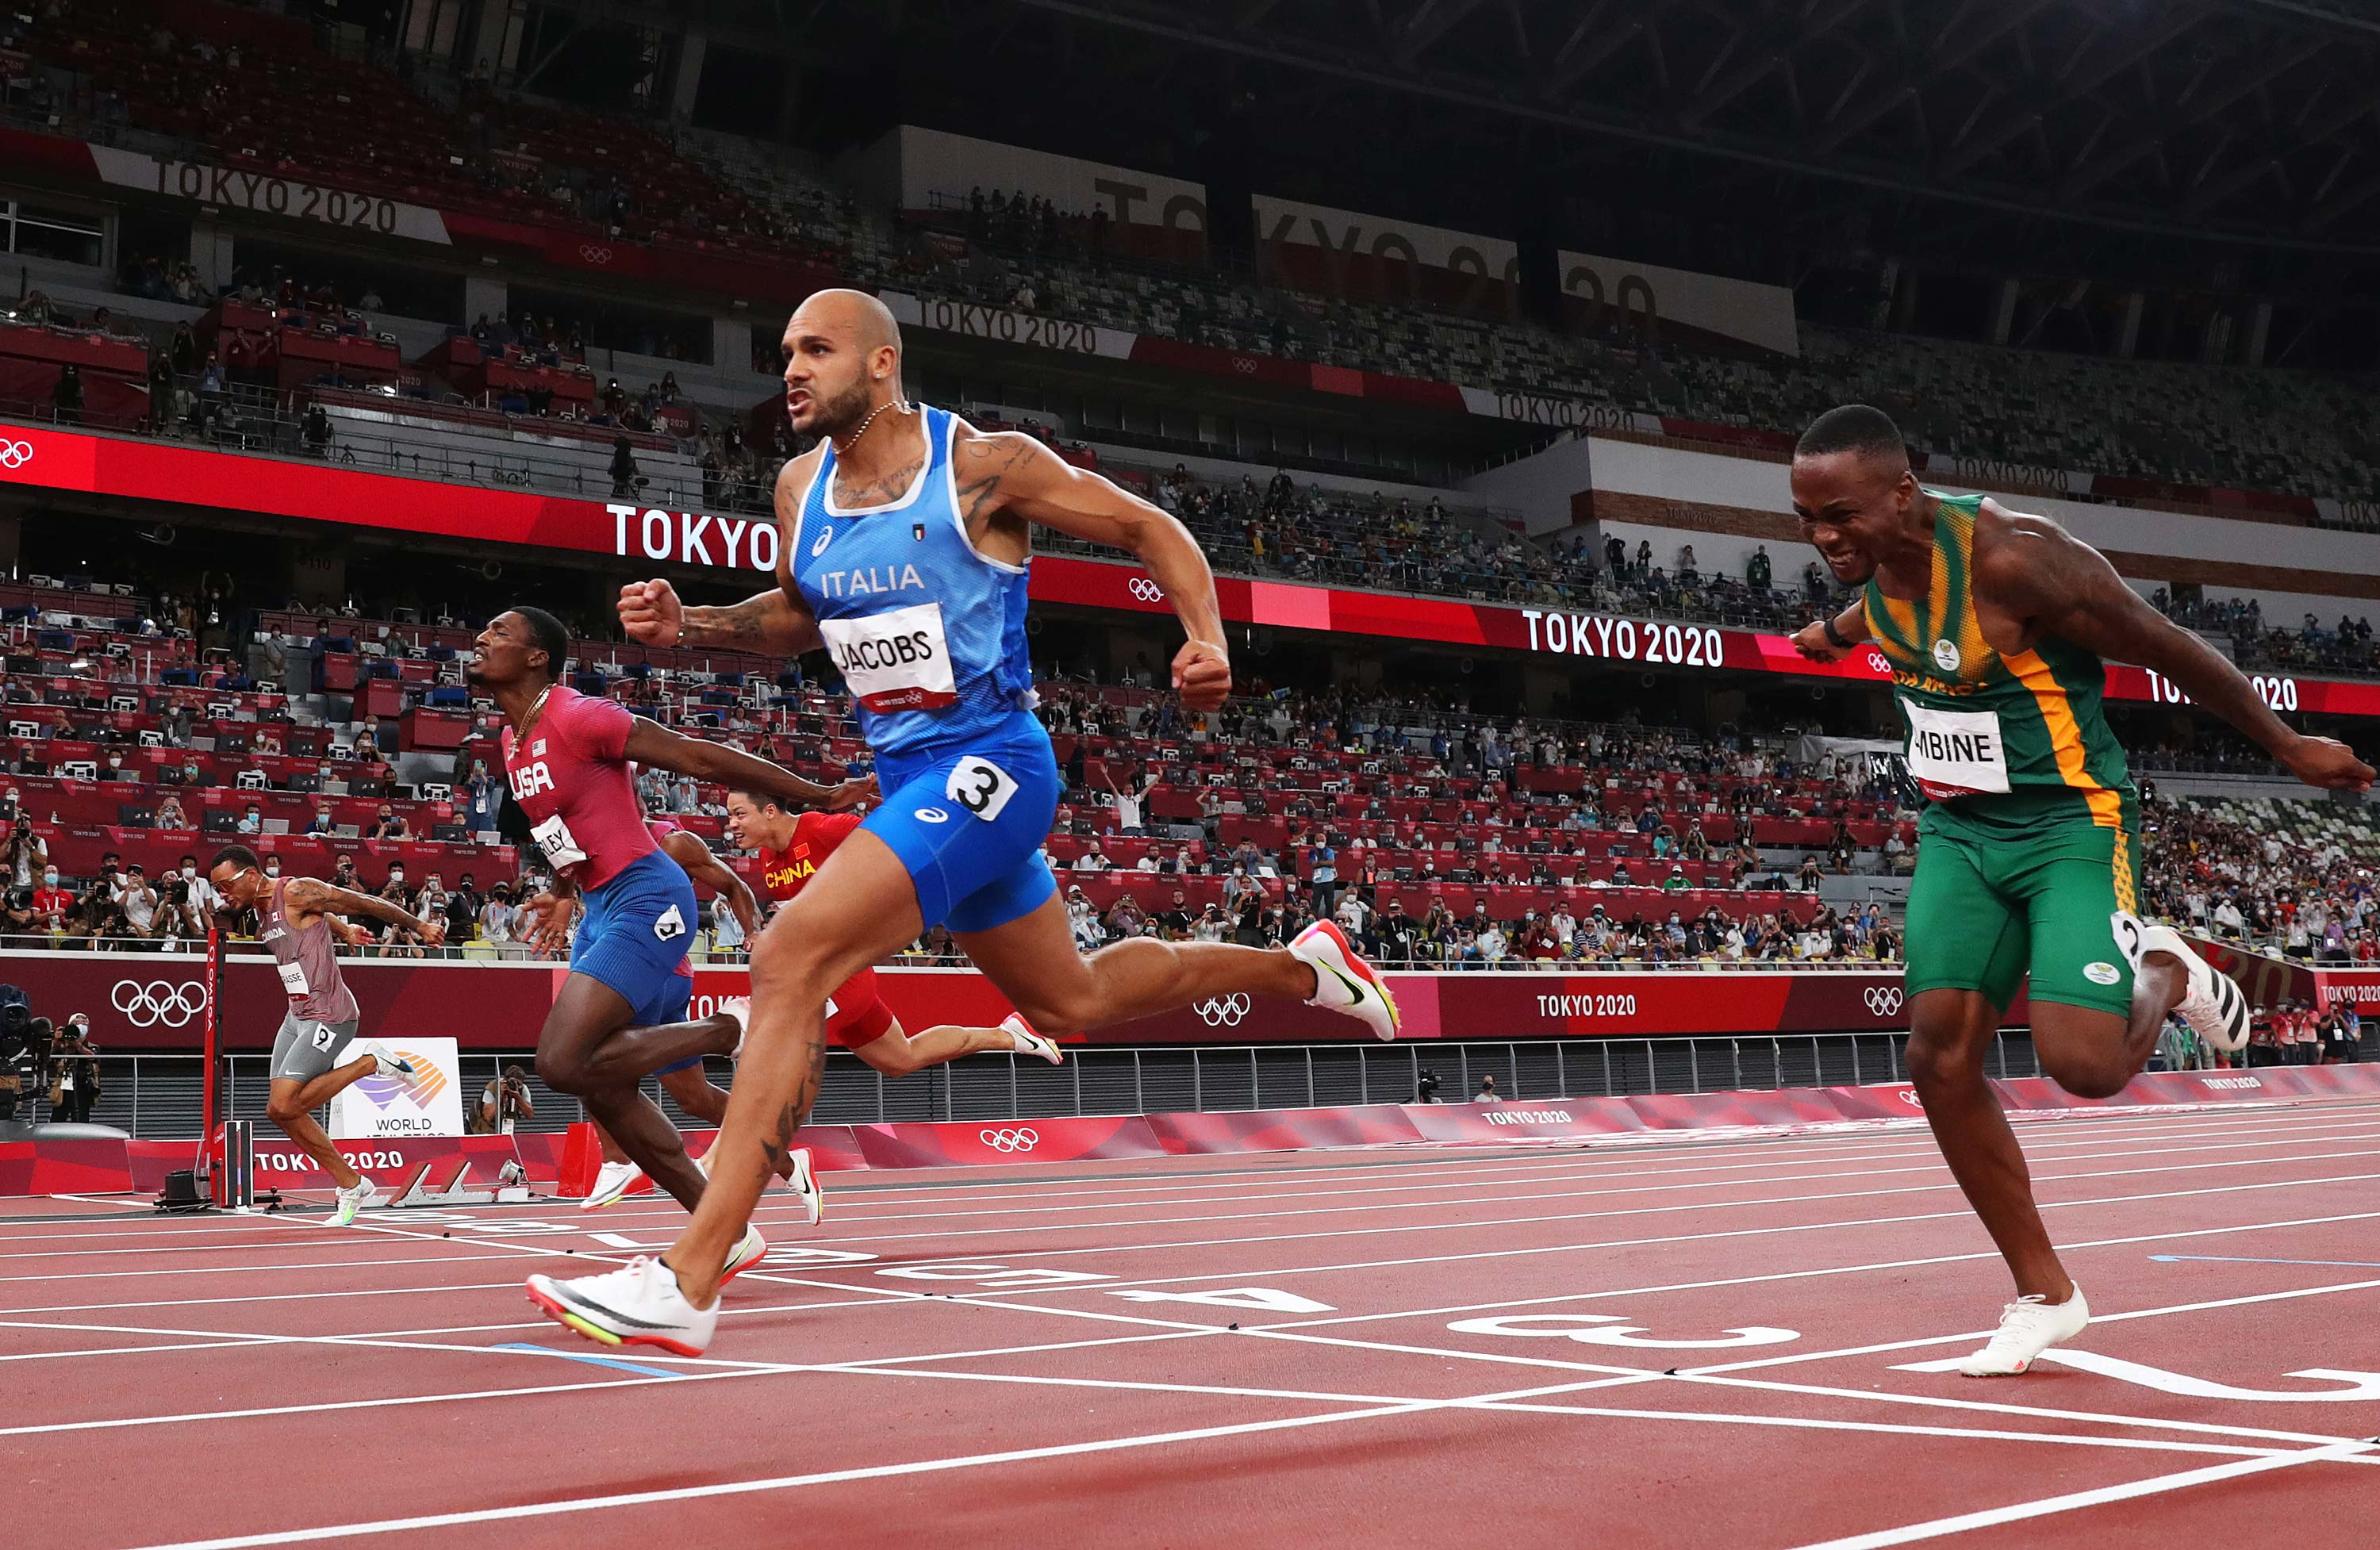 Italy's Lamont Marcell Jacobs wins the 100m final on August 1.